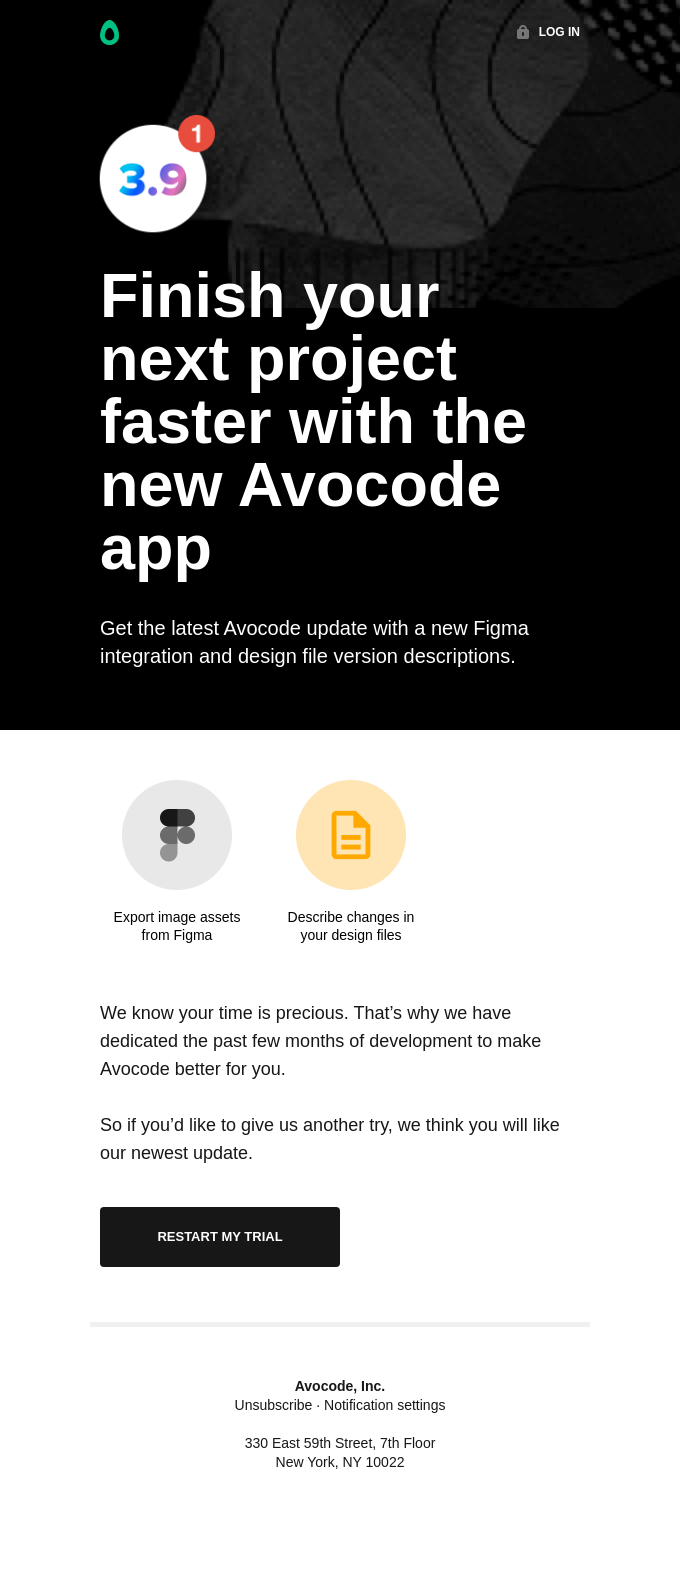 Restart your Avocode trial